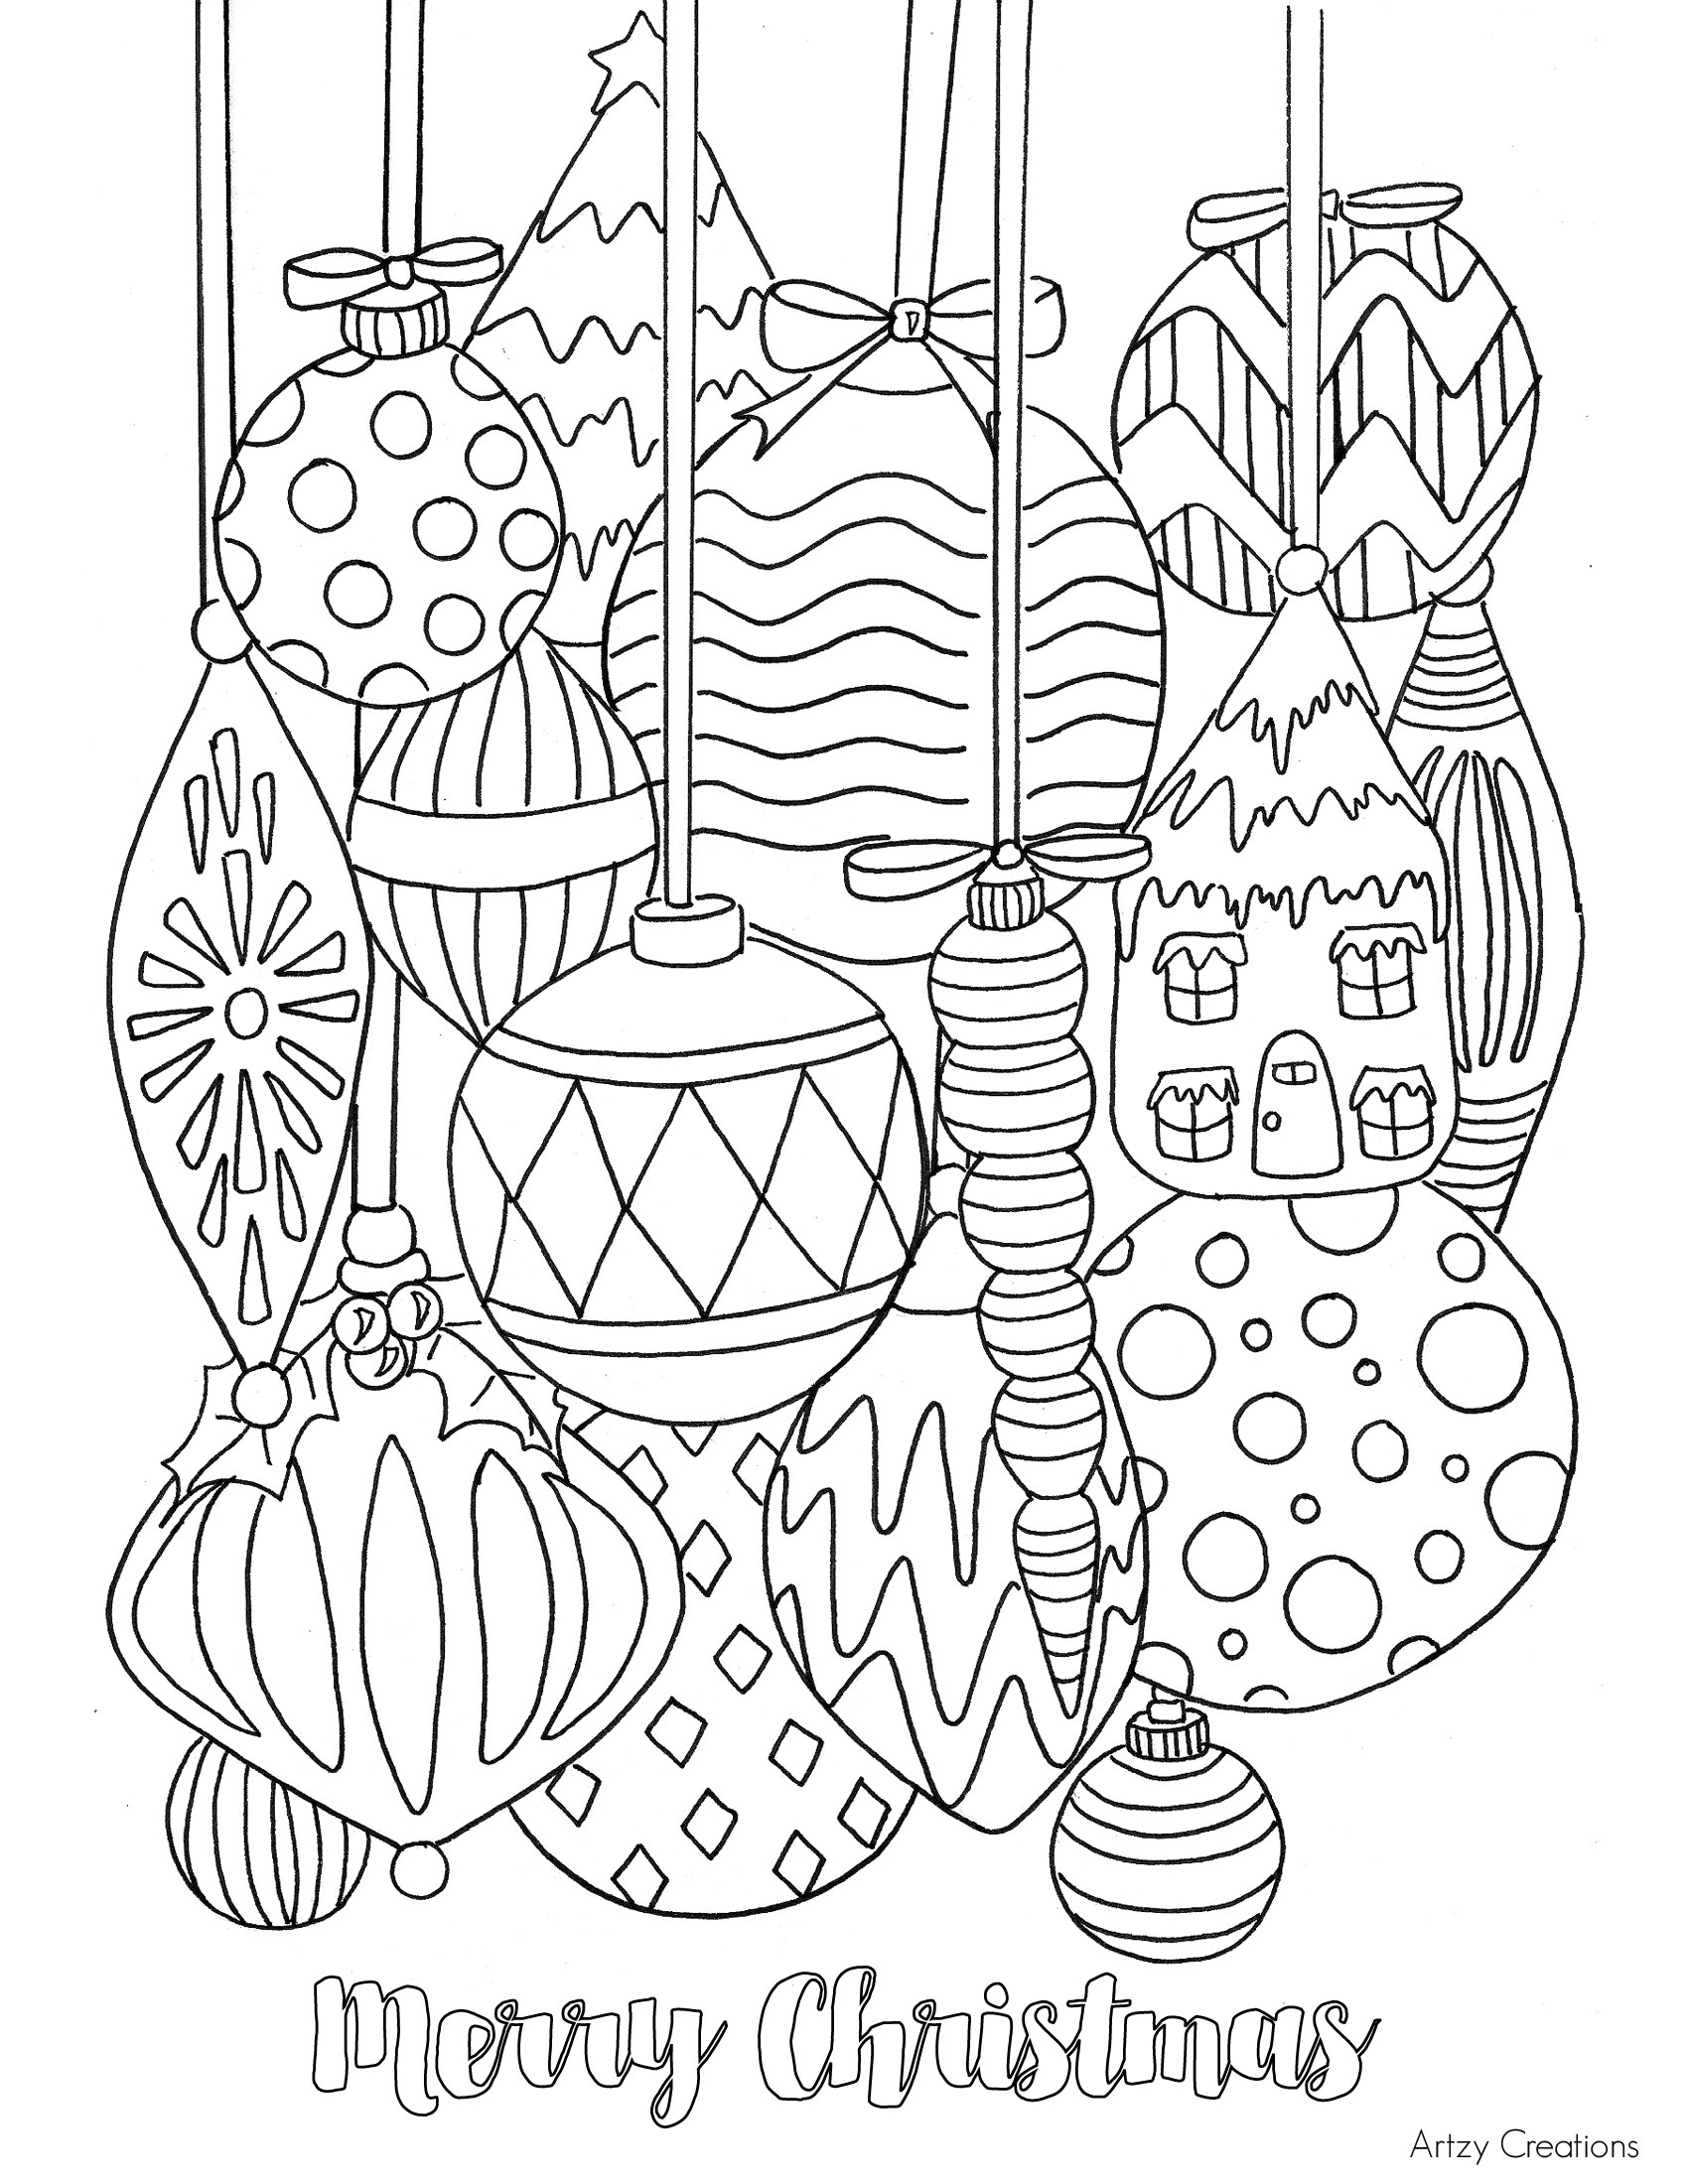 Christmas Coloring Worksheets With Free Ornament Page TGIF This Grandma Is Fun